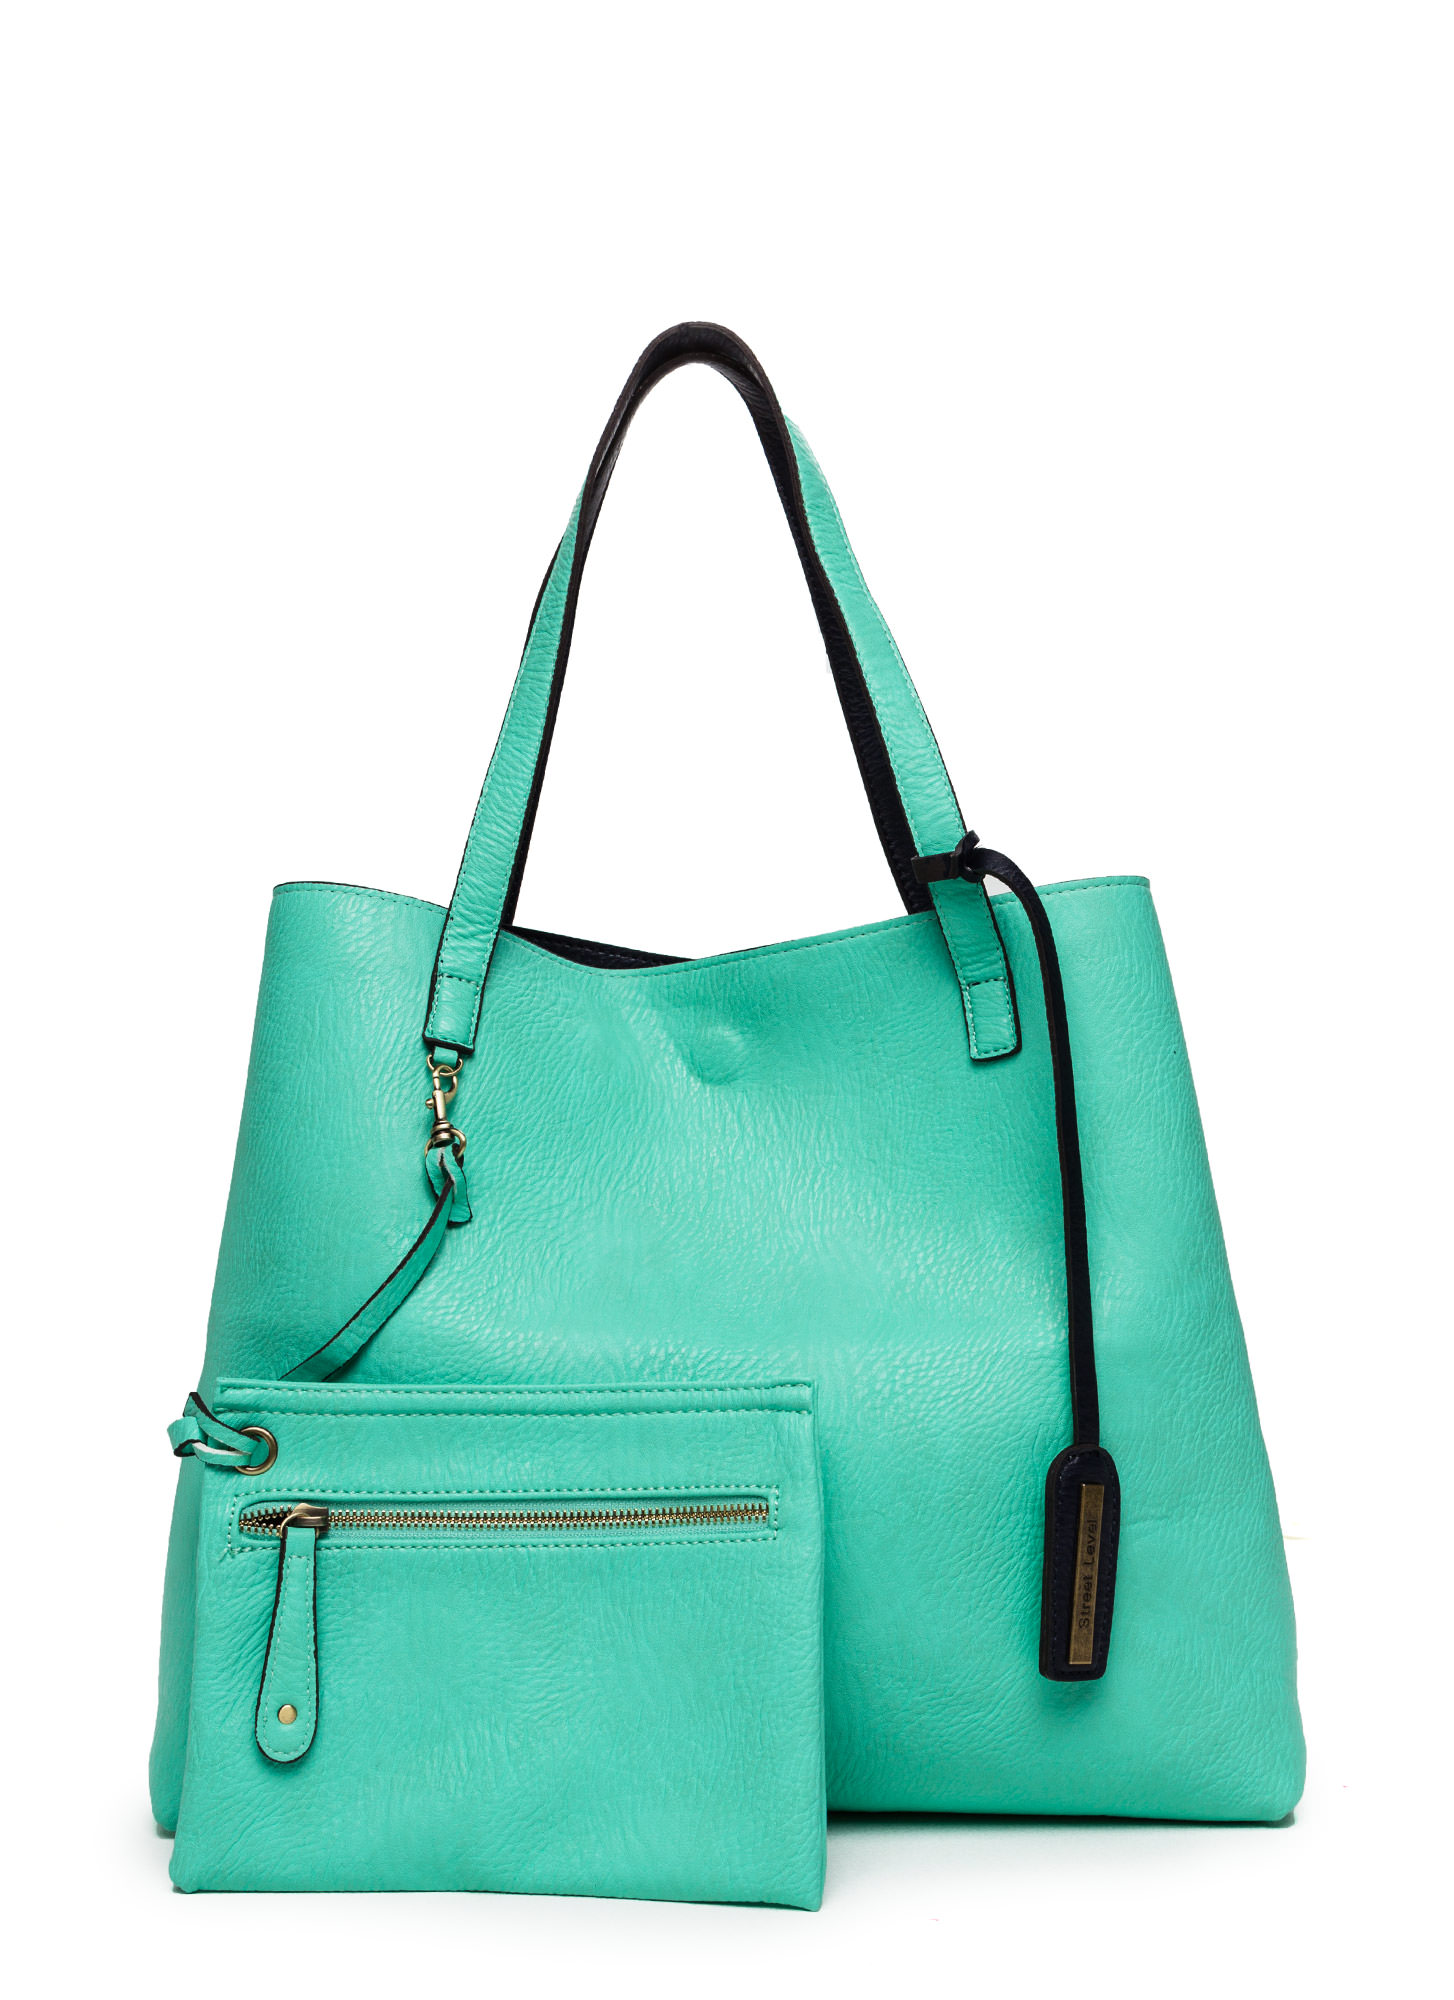 Street Level Two-Tone Reversible Tote Bag BLUEMINT